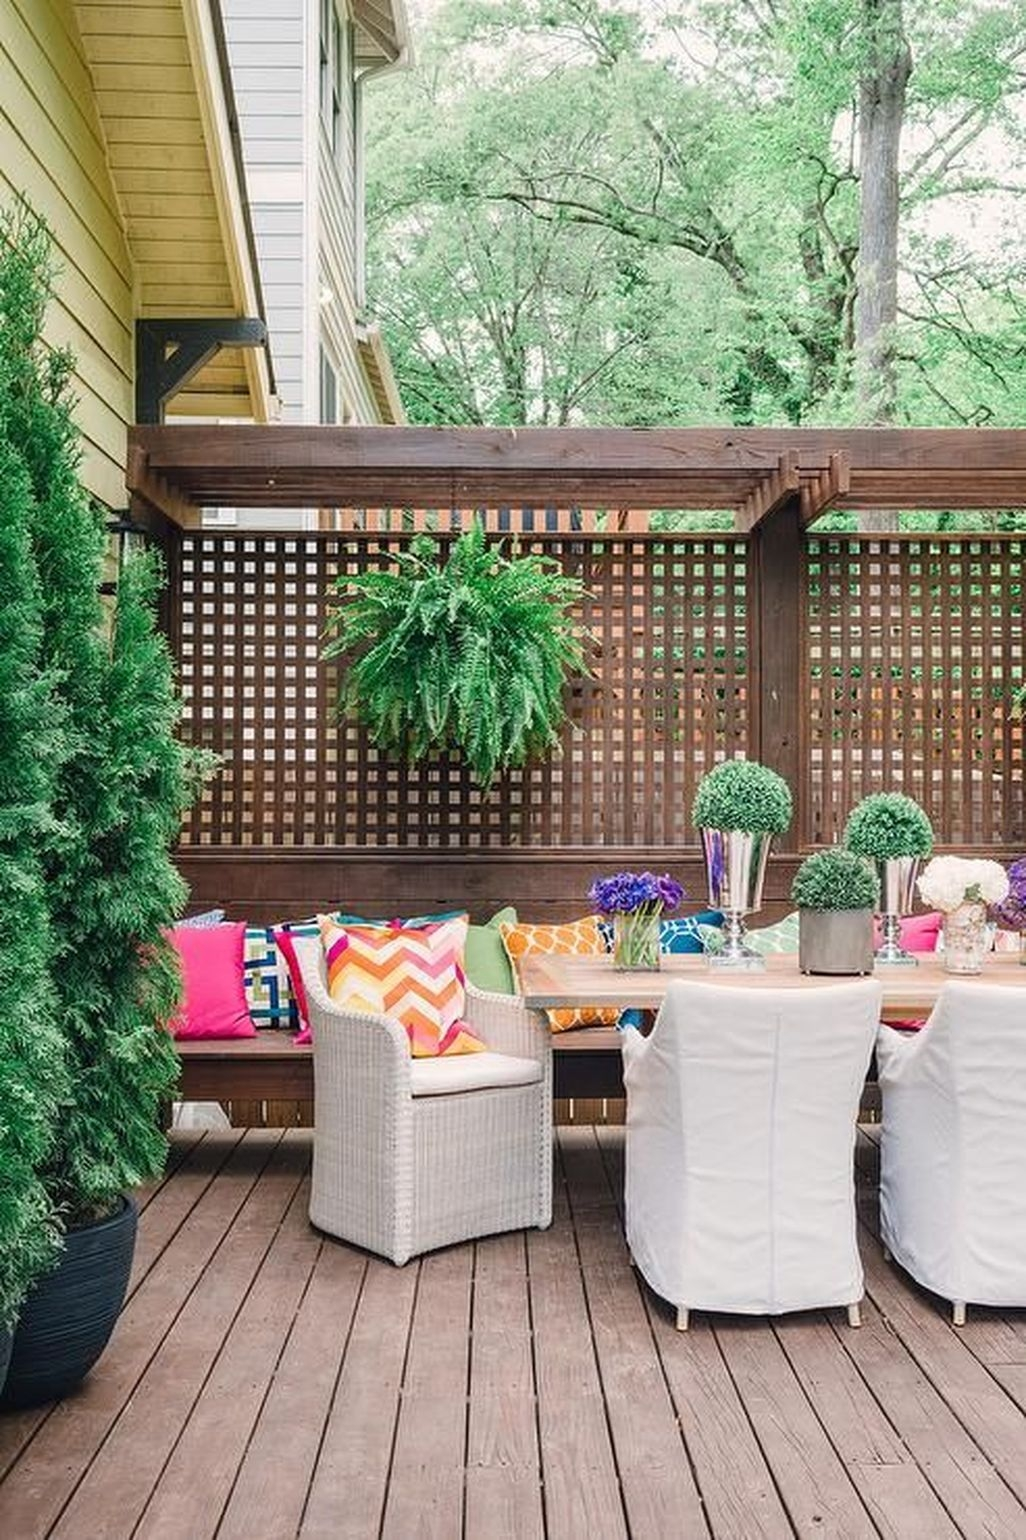 Adorable Wooden Privacy Fence Patio Backyard Landscaping Ideas 28